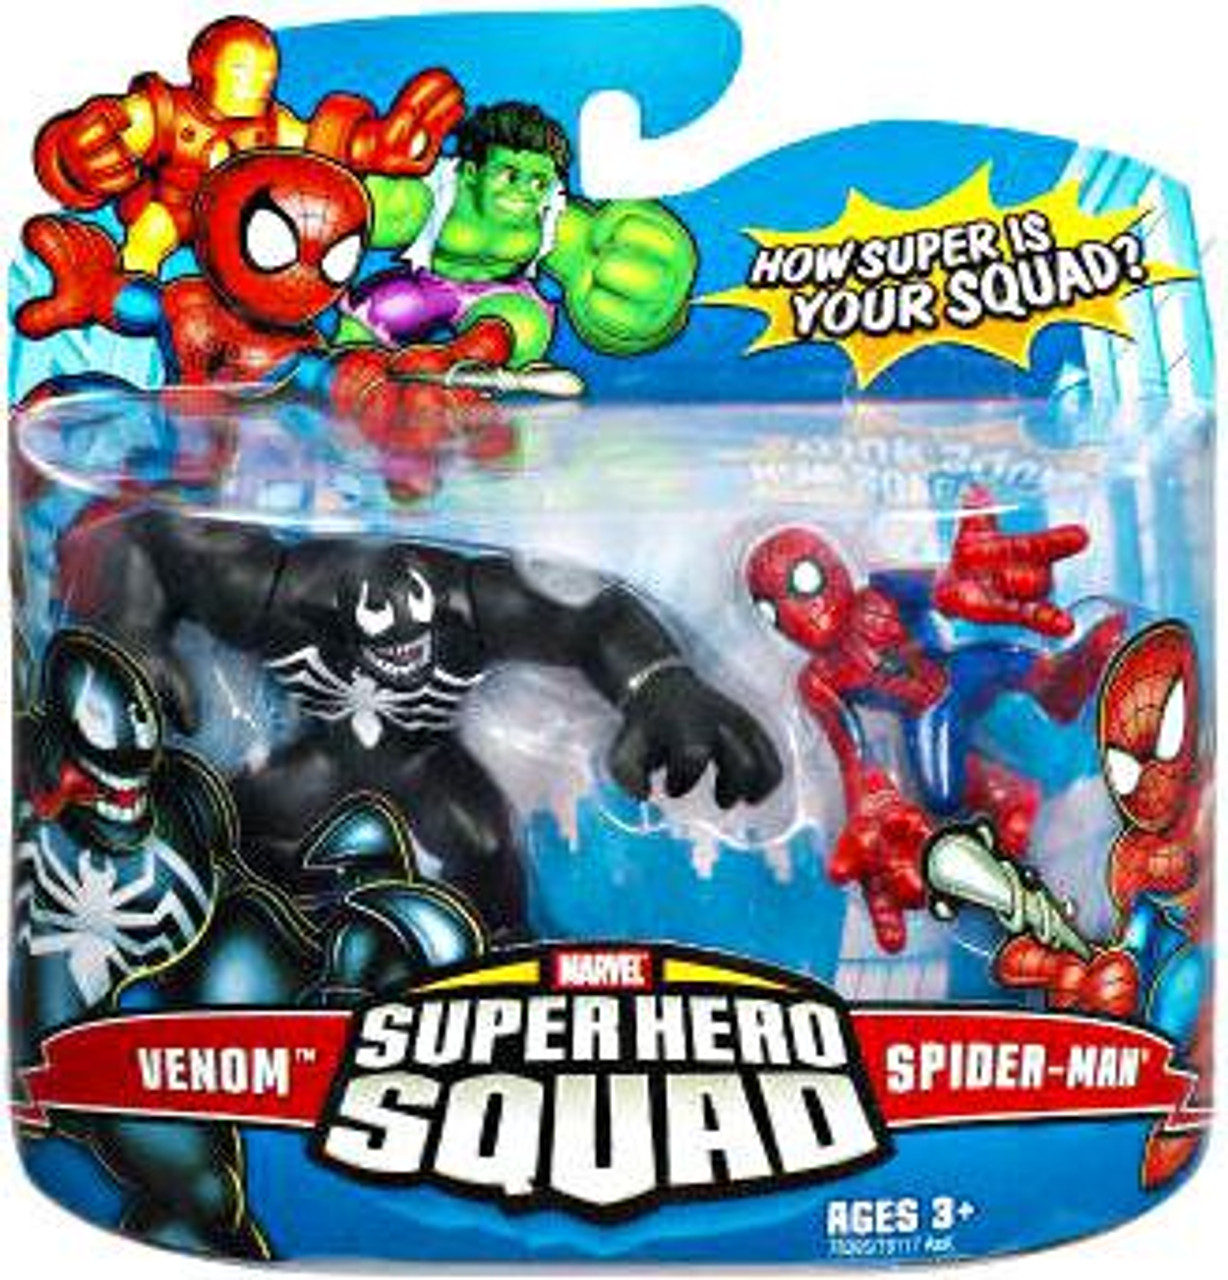 Marvel Super Hero Squad Series 7 Venom & Spider-Man Action Figure 2-Pack